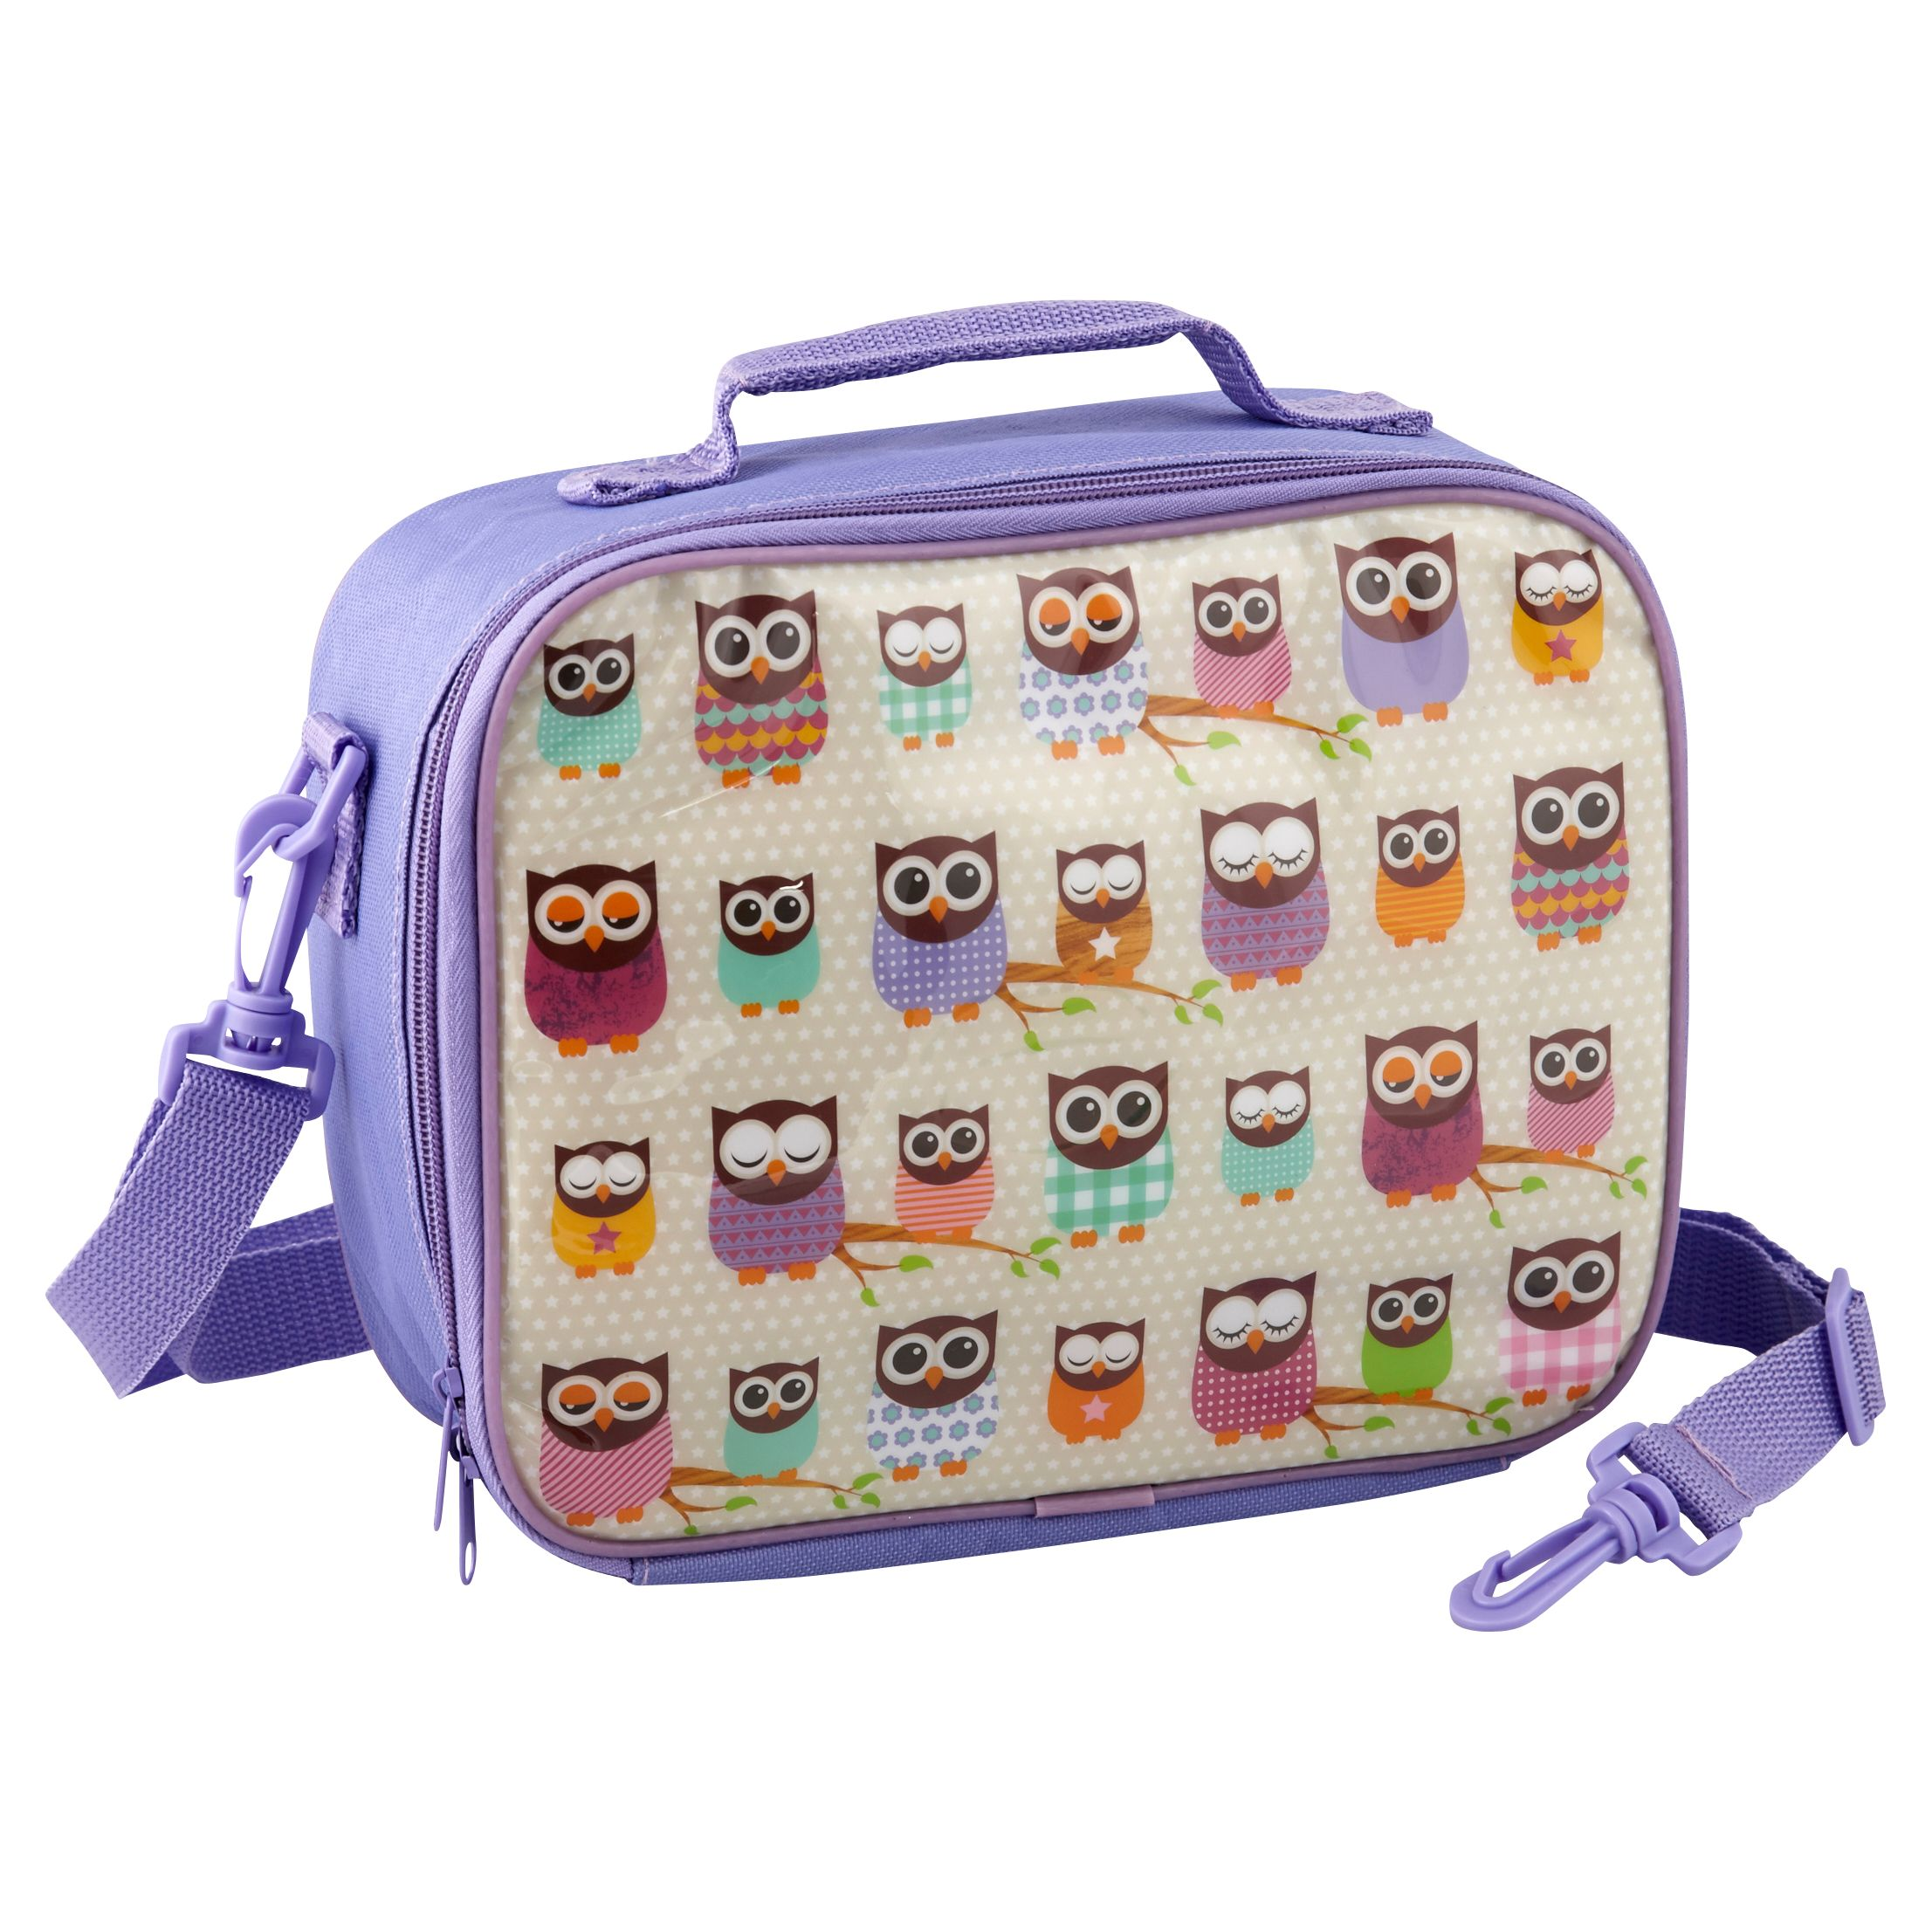 Give A Hoot Lunch Bag, Purple